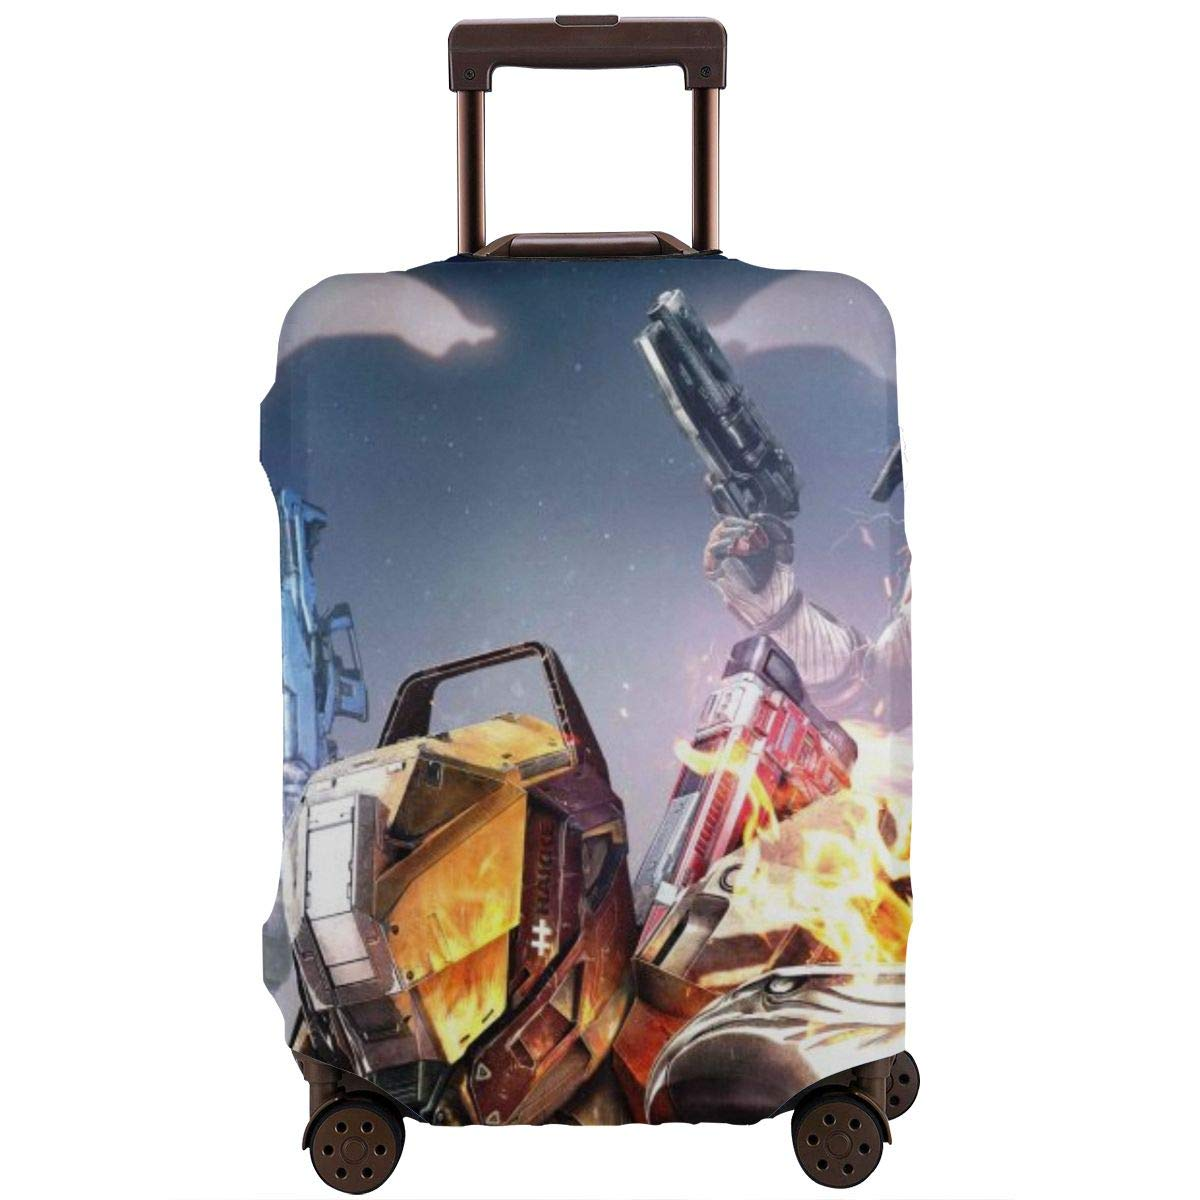 Destiny The Taken King Suitcase Protector Travel Luggage Cover Fit